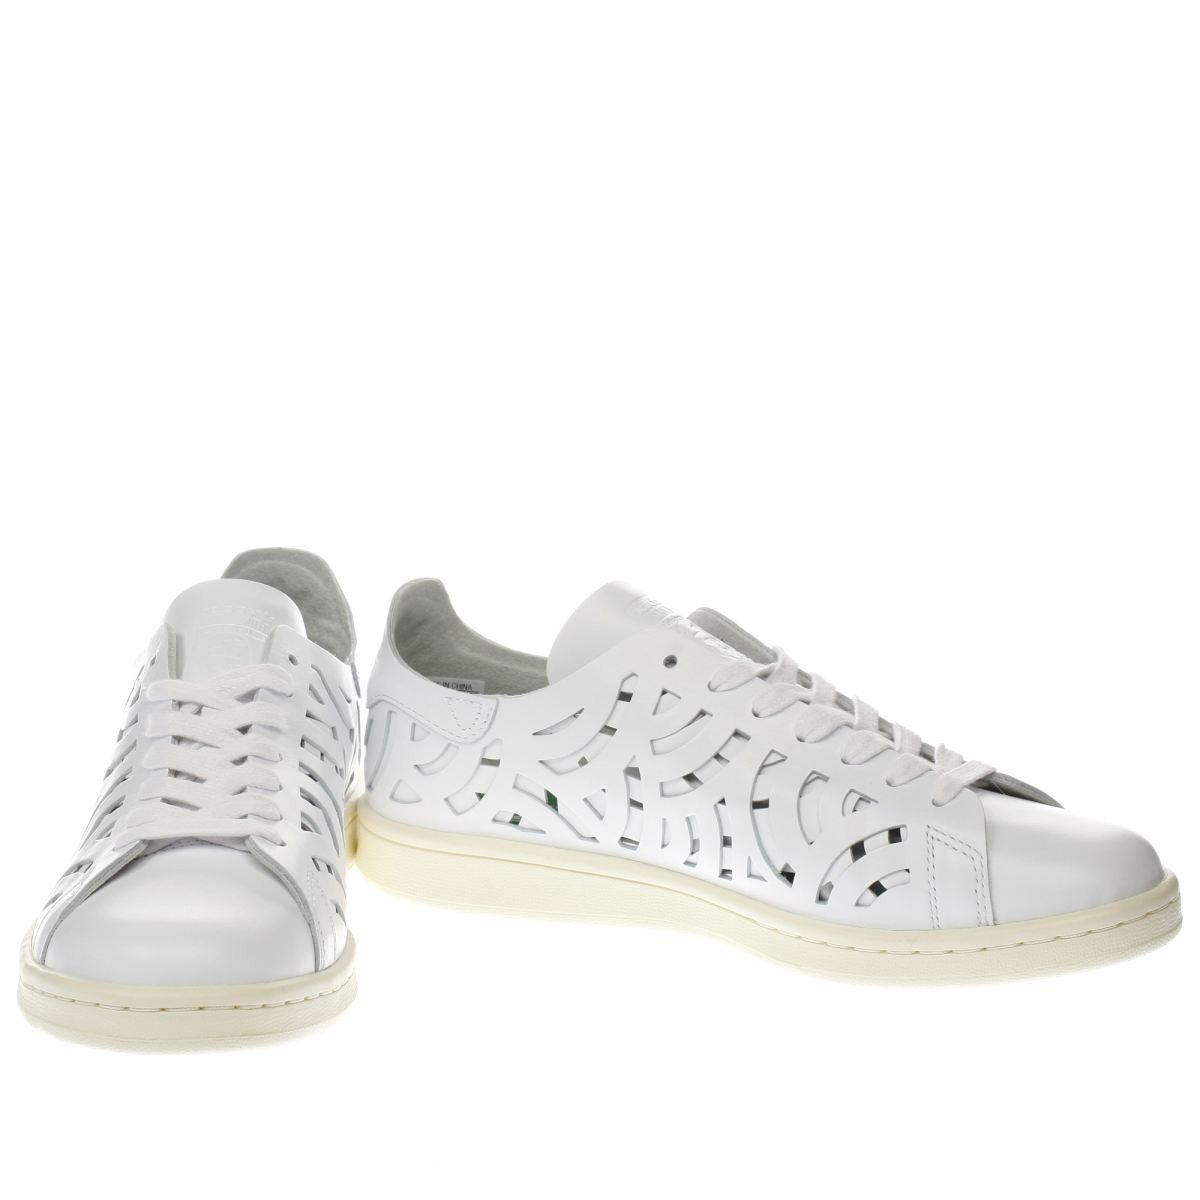 stan smith sverige